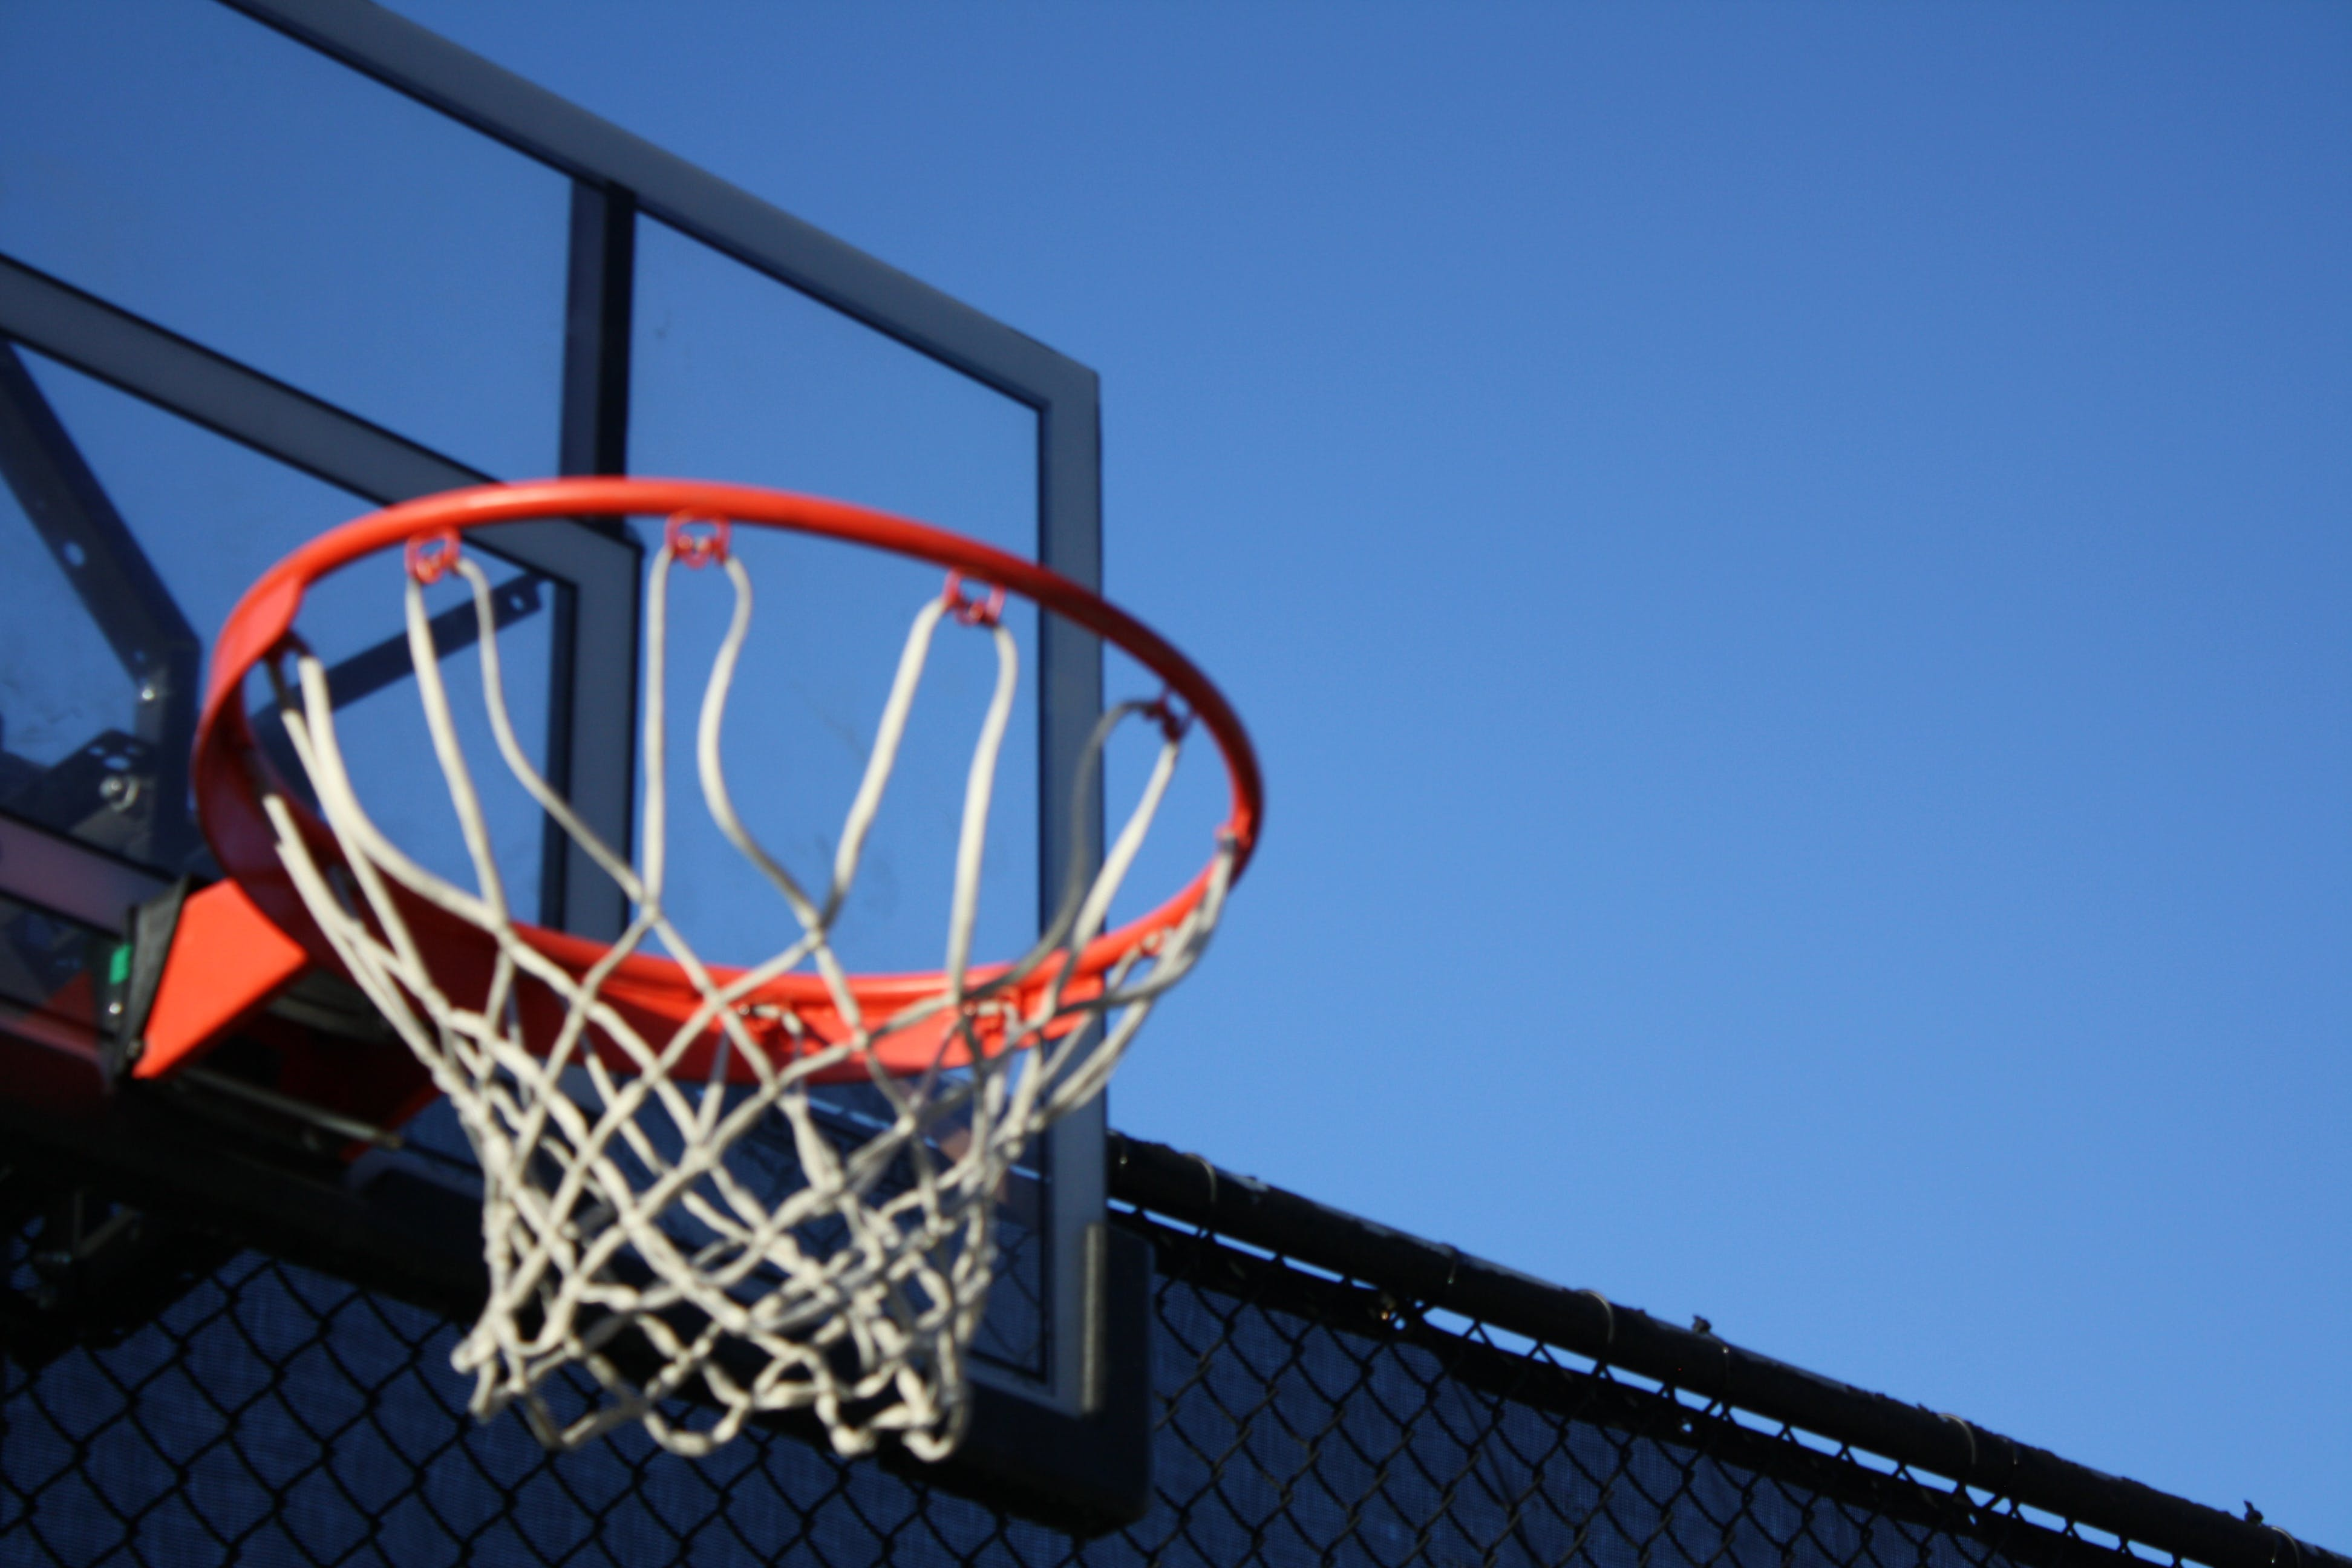 Gray Metal Frame Basketball Hoop System